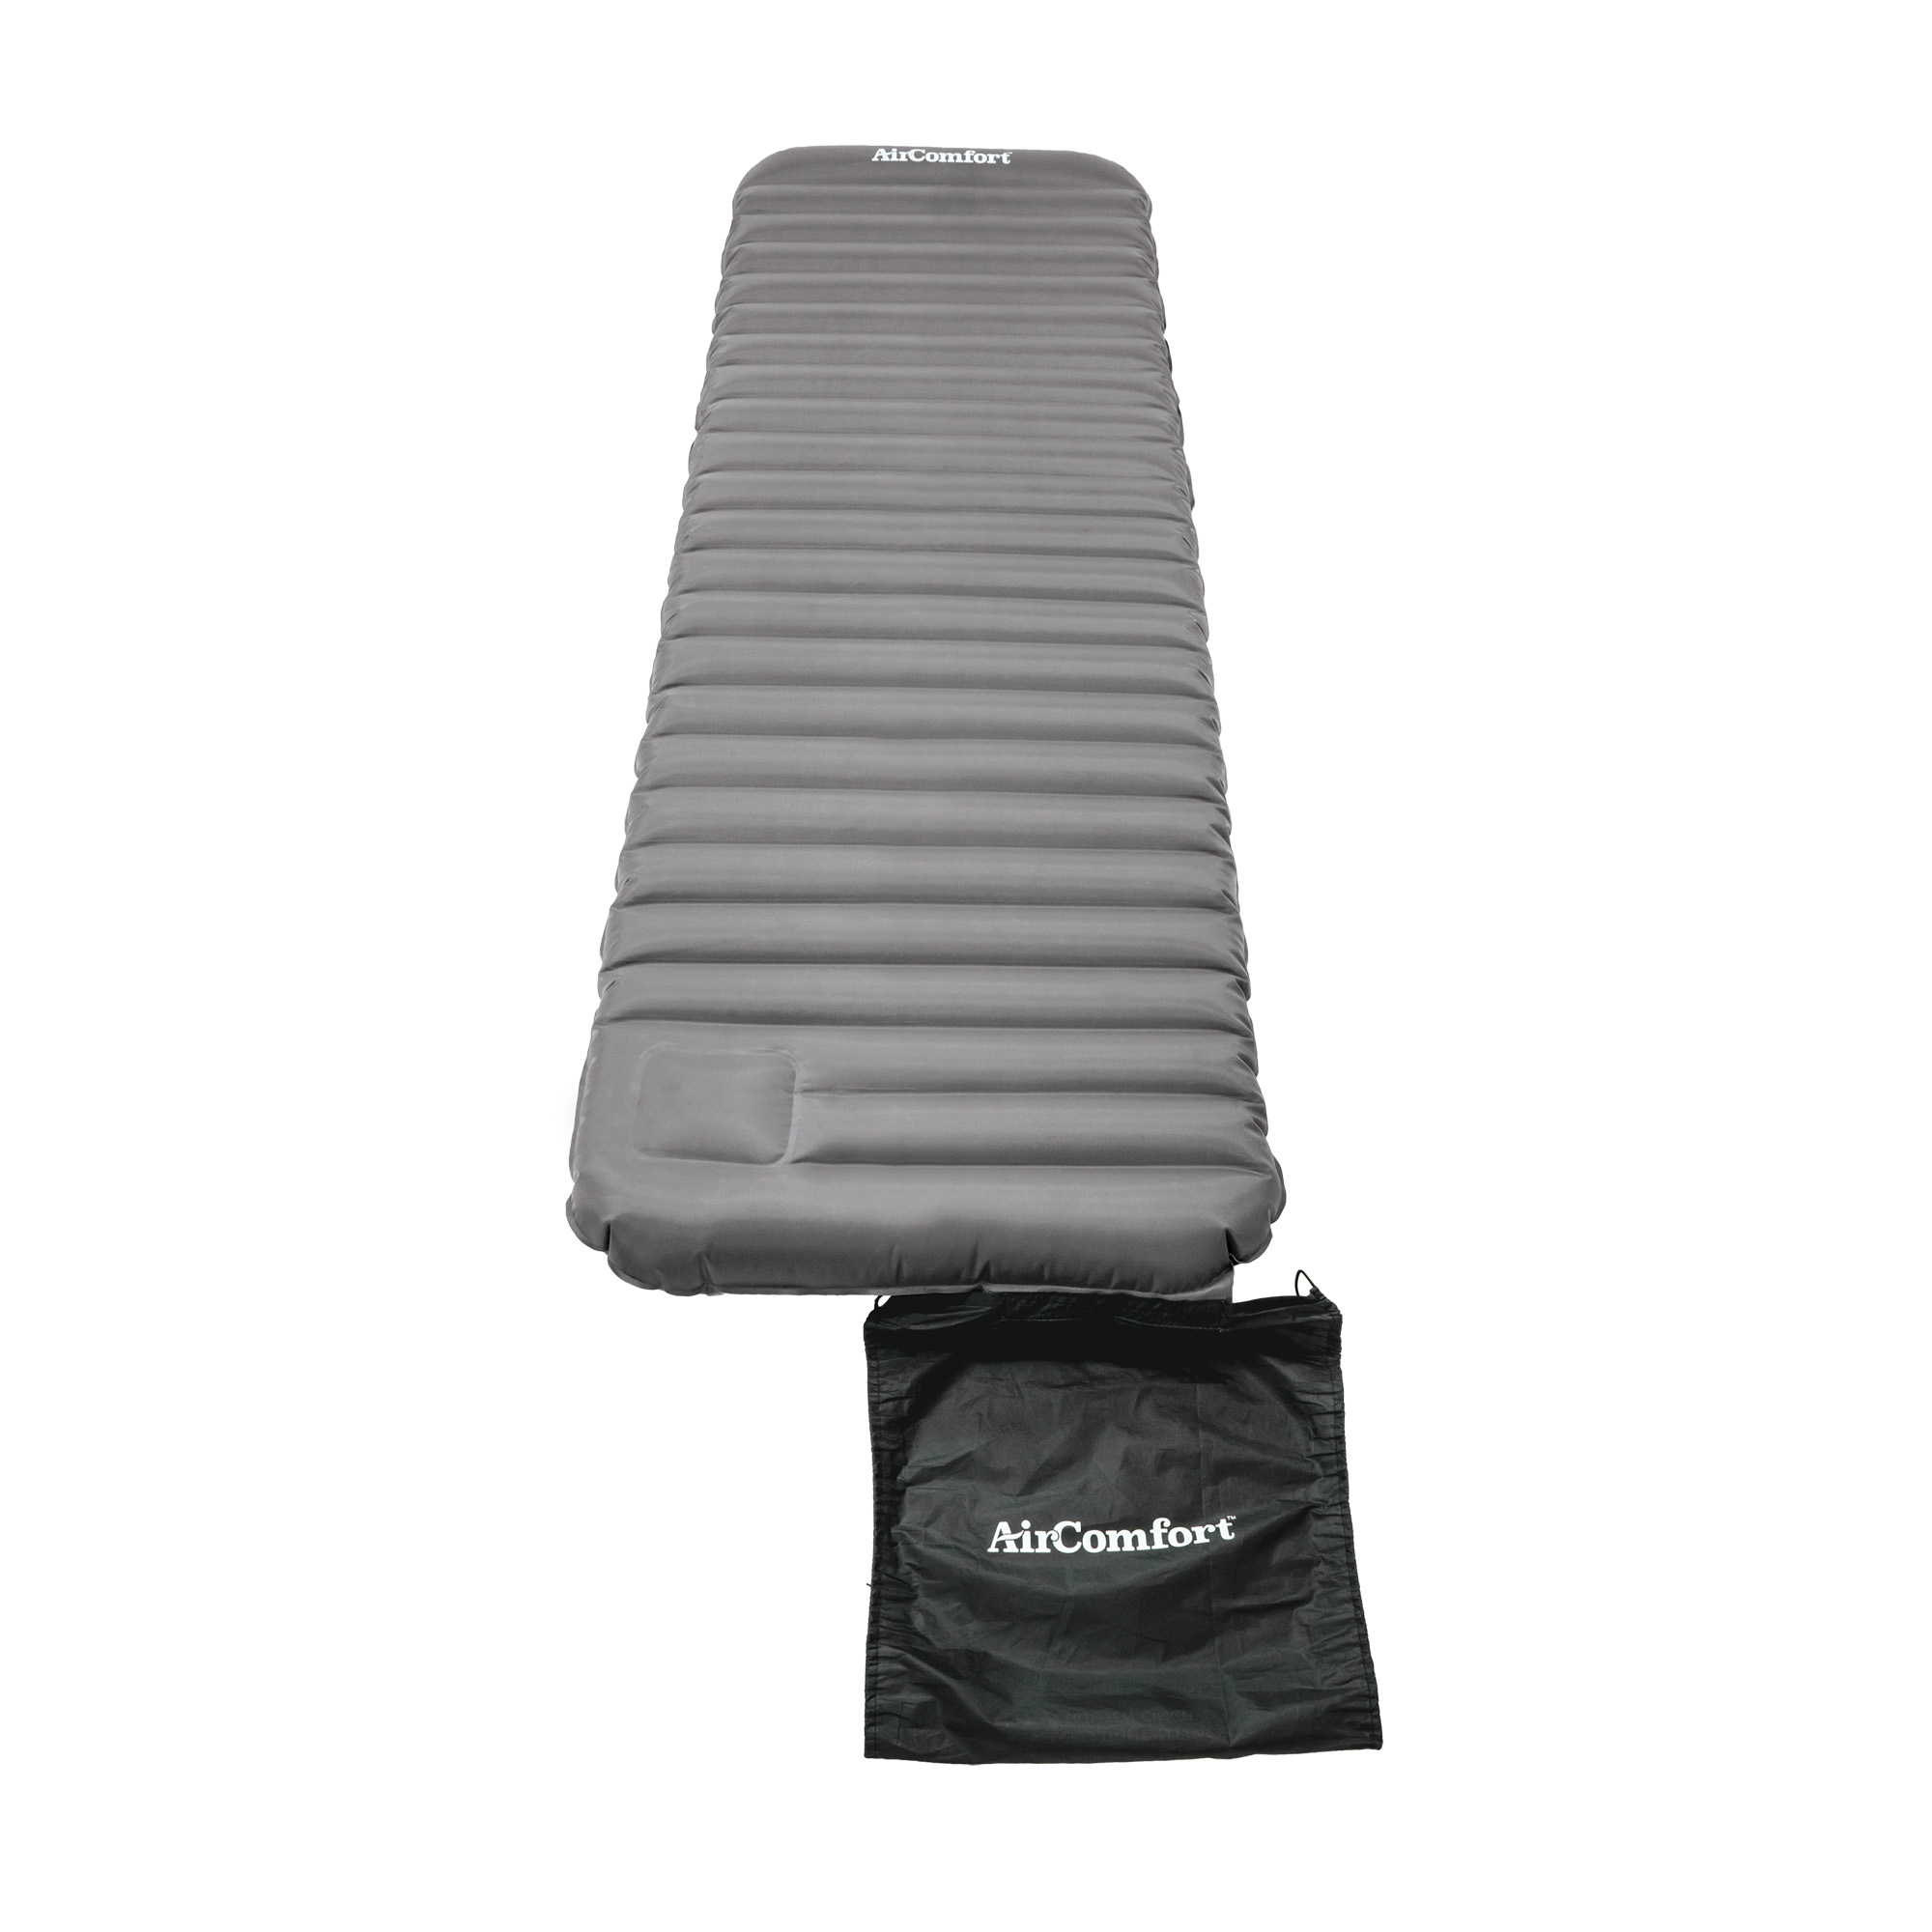 Air Comfort Roll and Go Lightweight Sleeping Pad, Grey by Pure Global Brands Inc